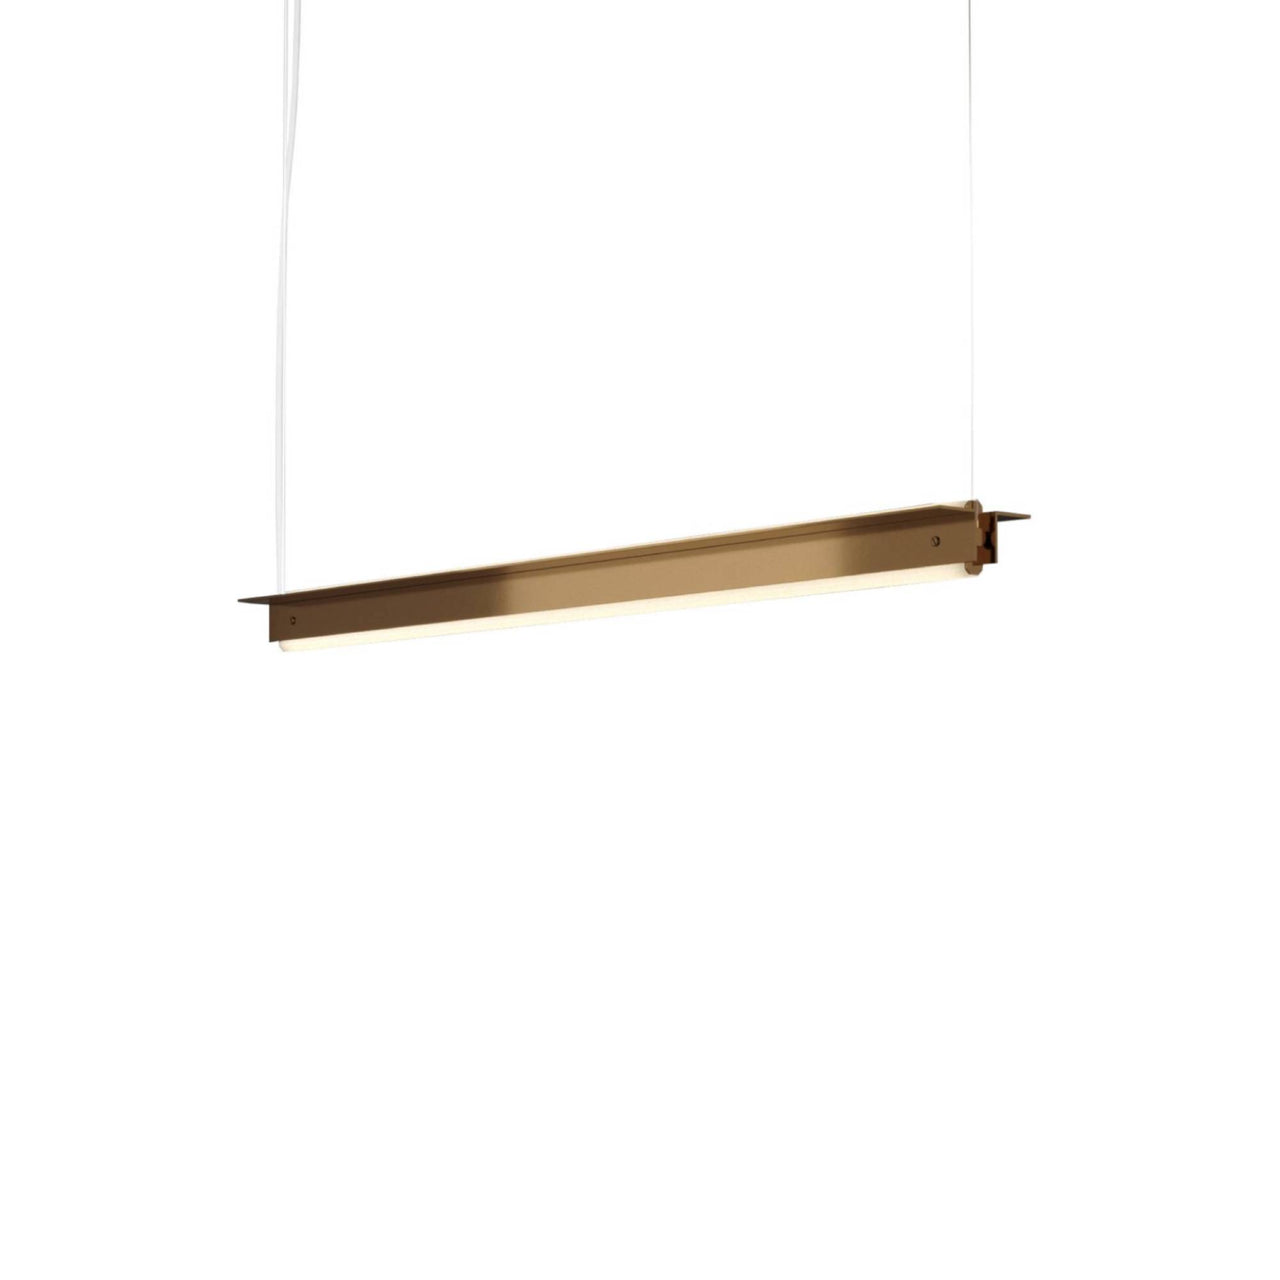 Axis T Suspension Light: 36